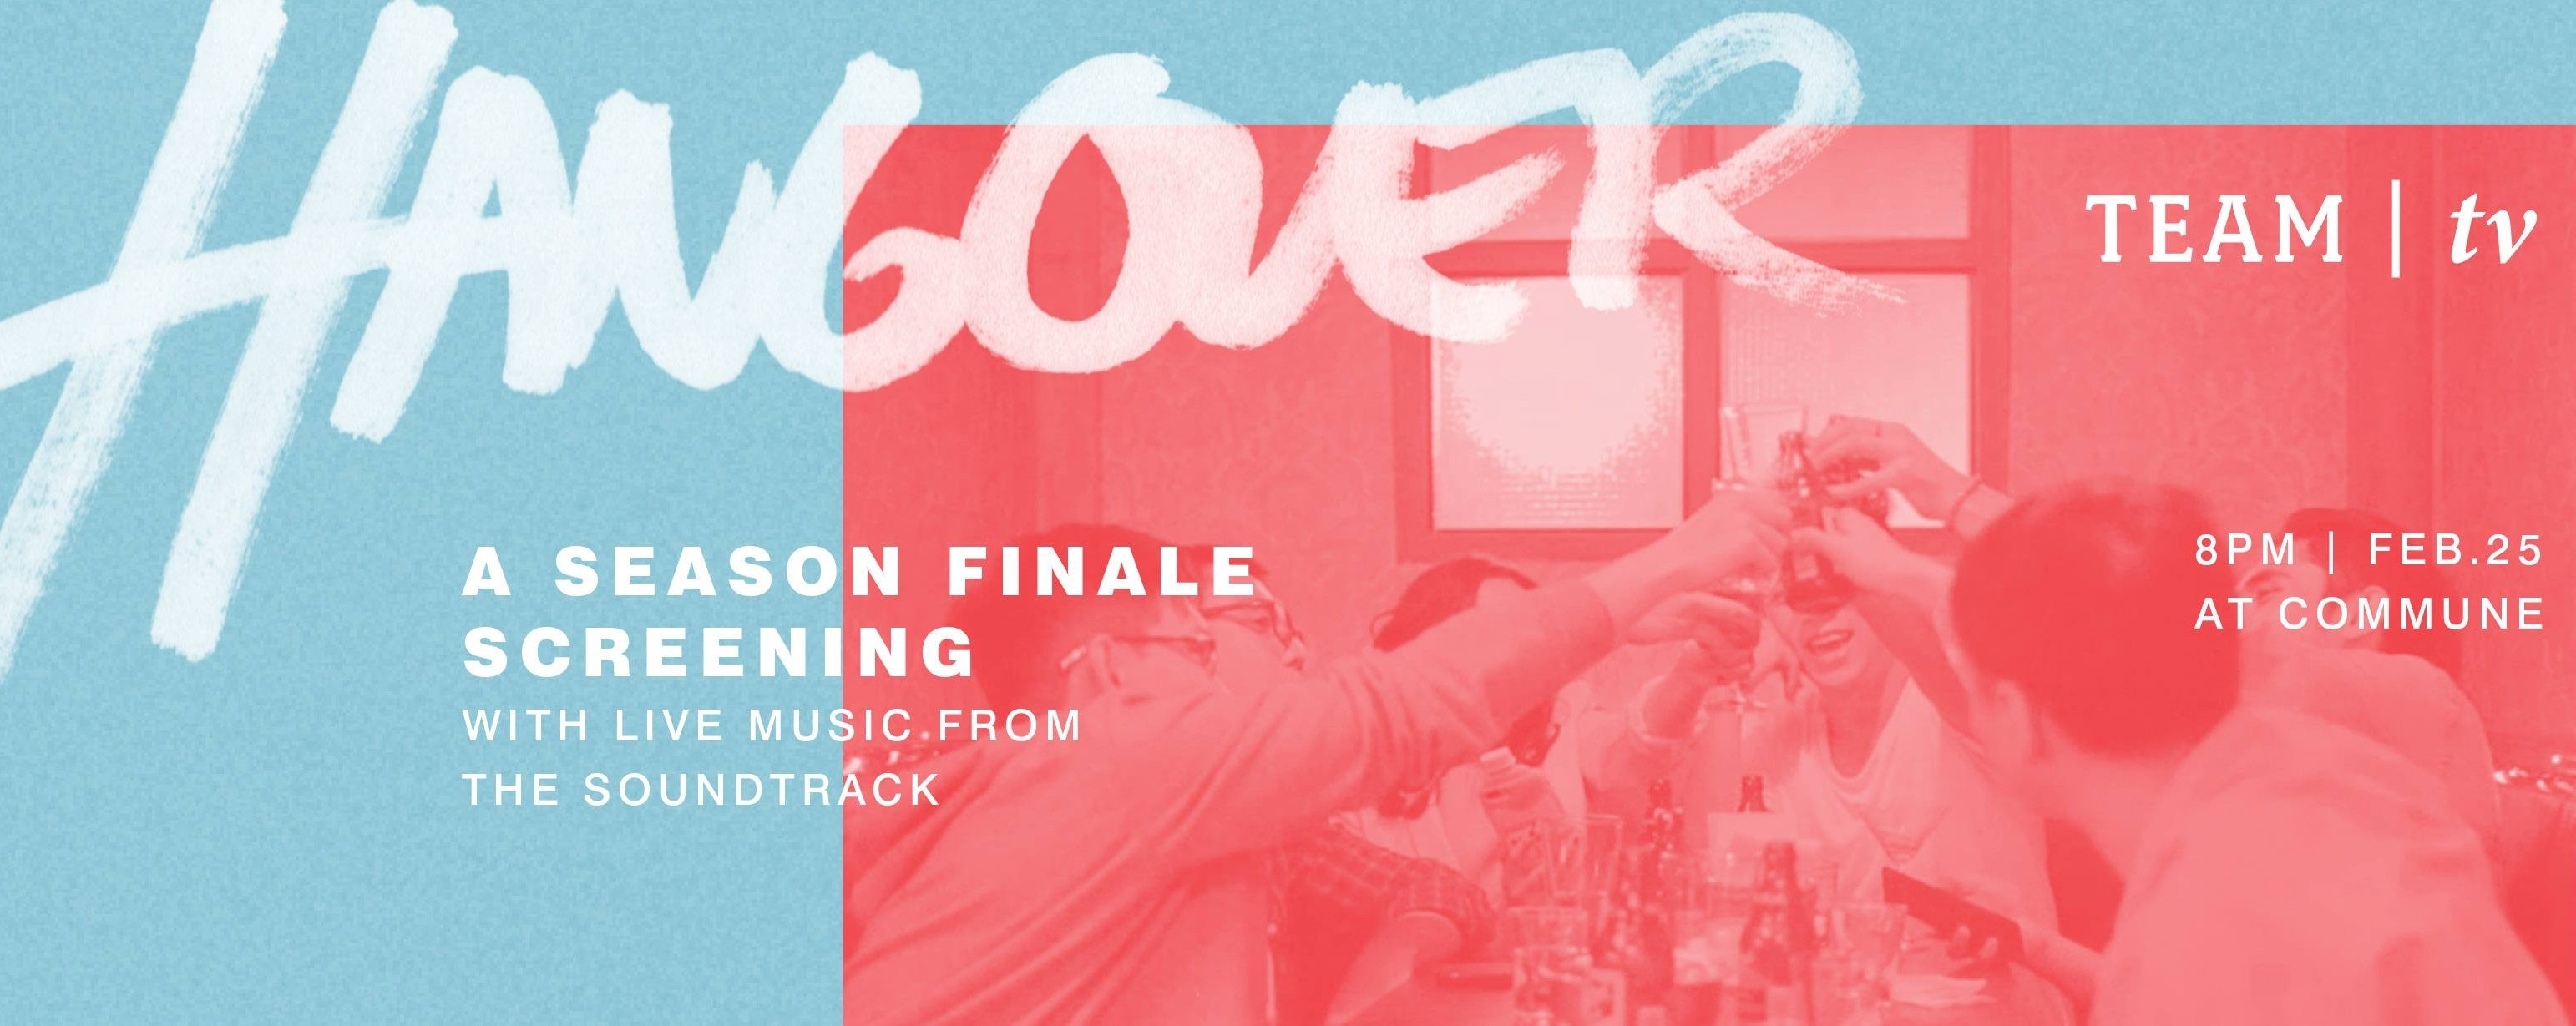 HANG OVER - Hanging Out's Finale Screening Party